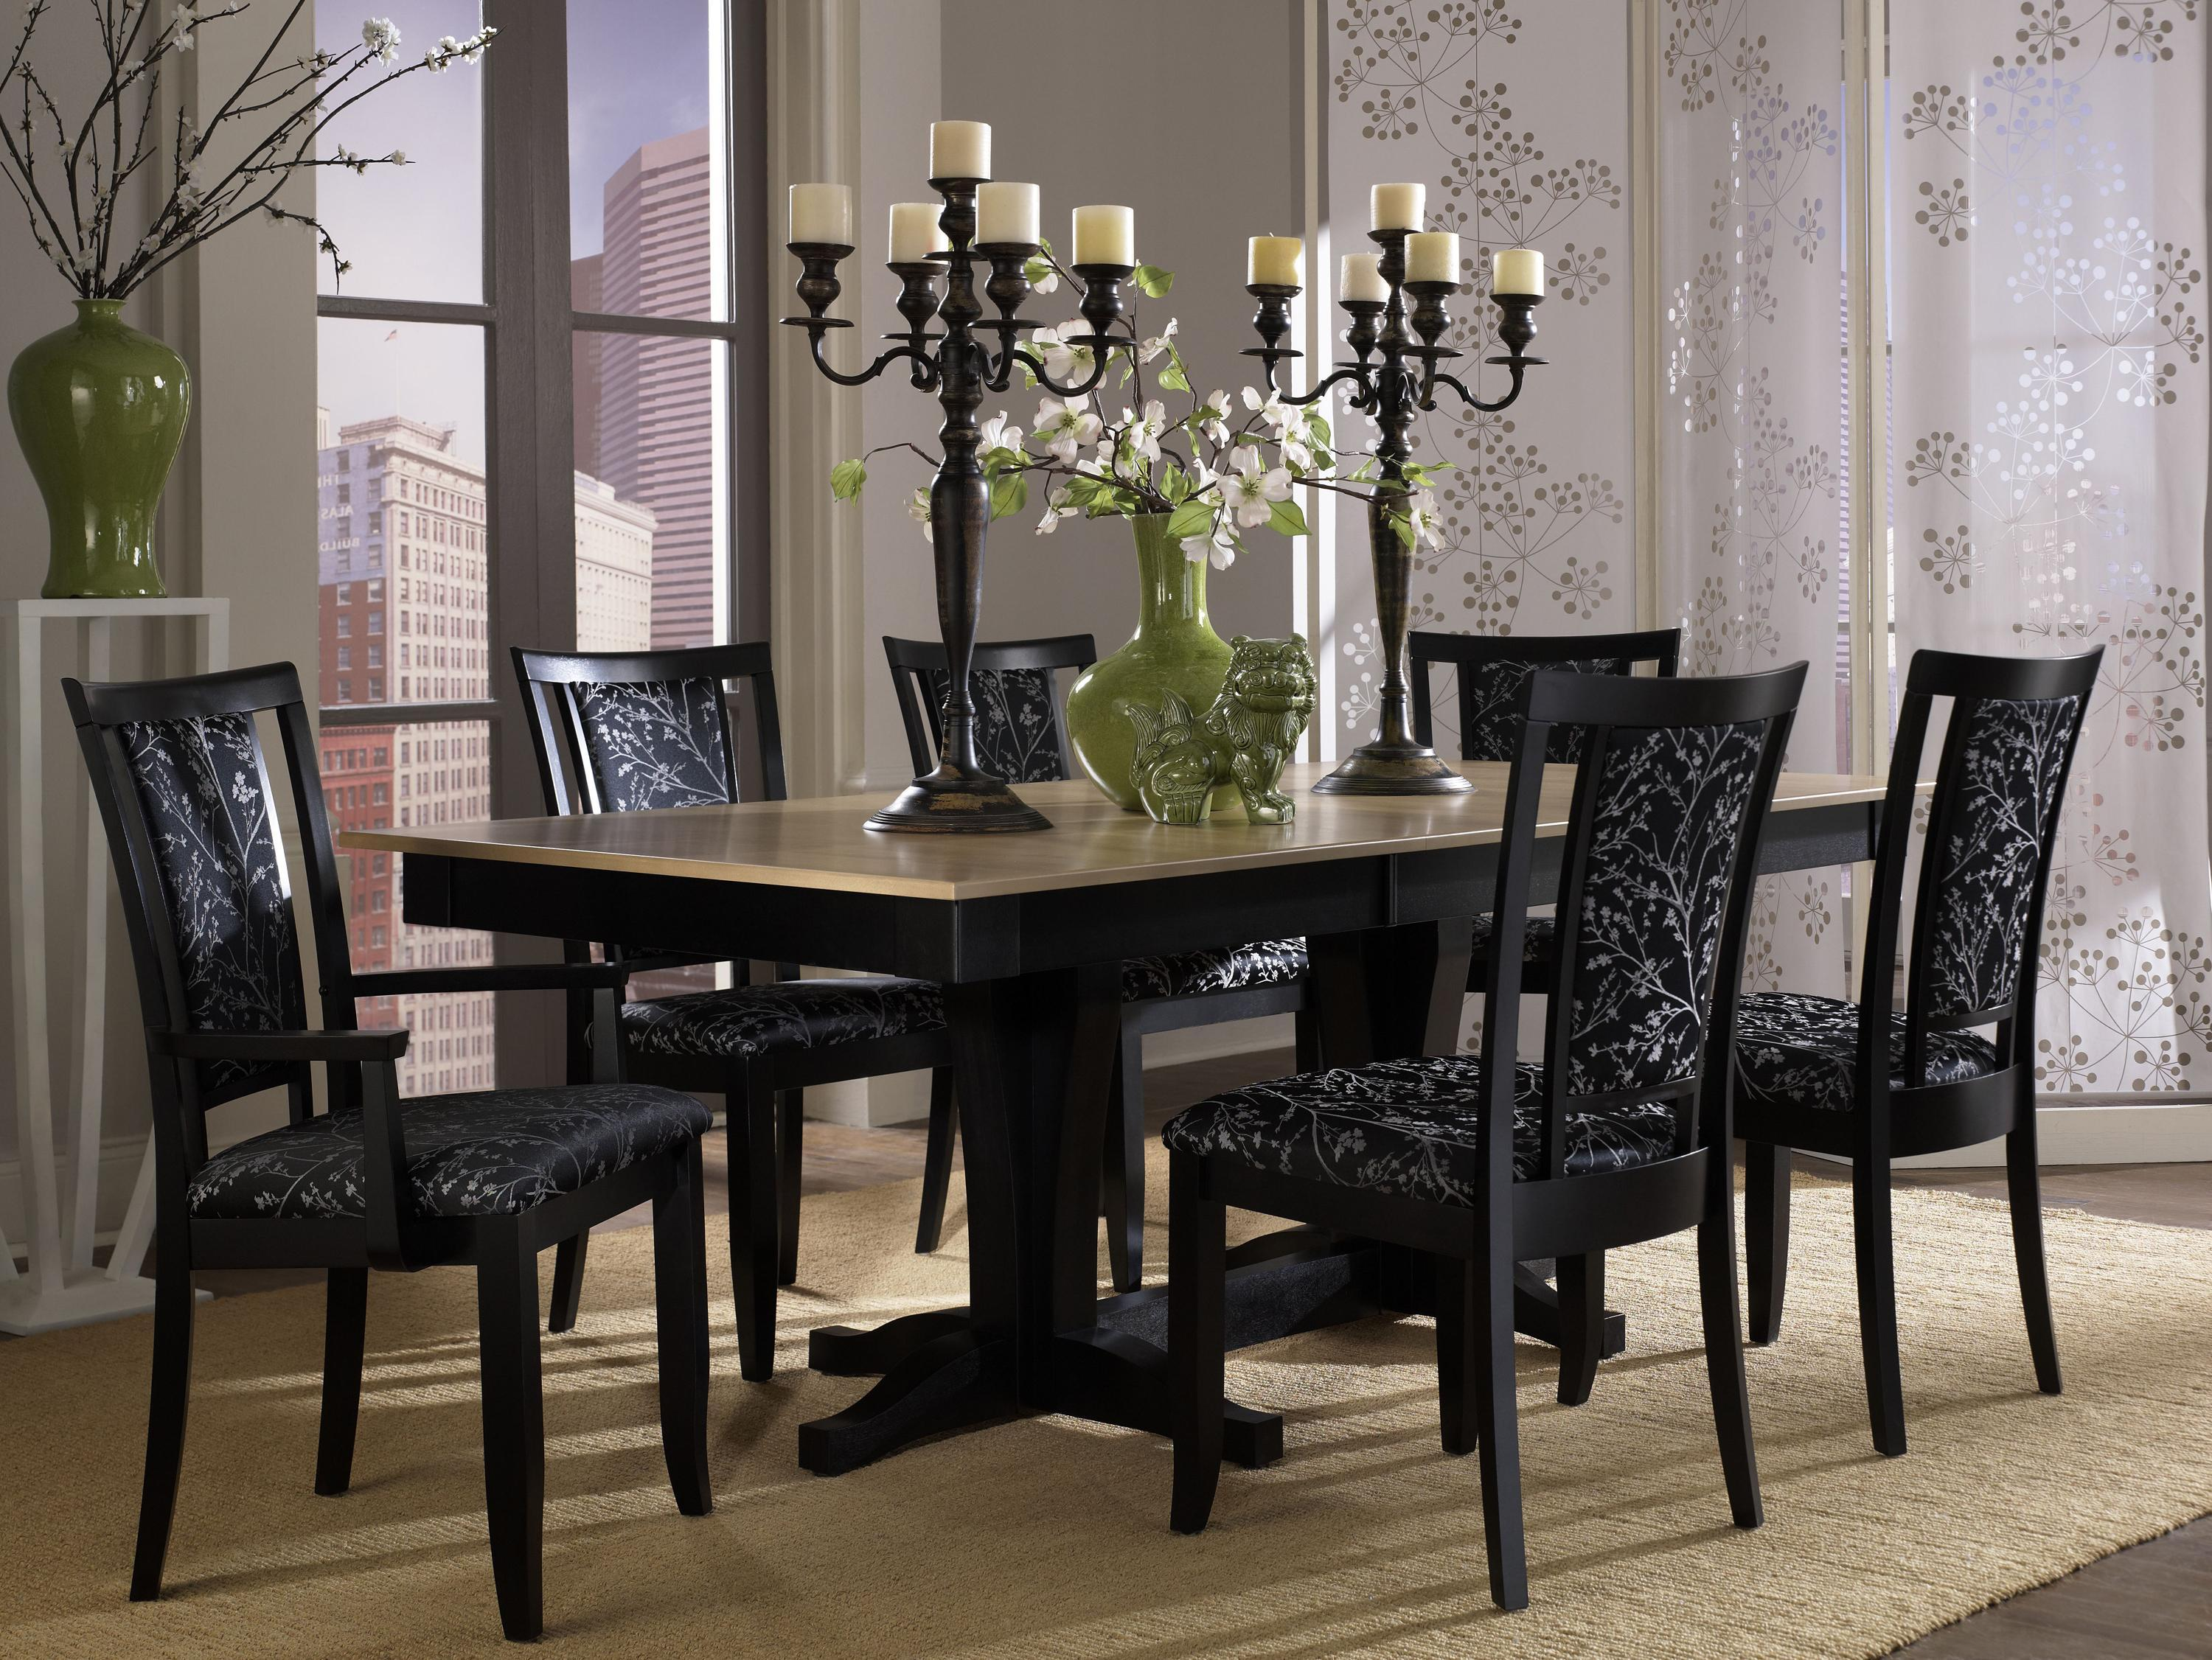 Canadel Custom Dining - Contemporary Customizable Upholstered Side ...